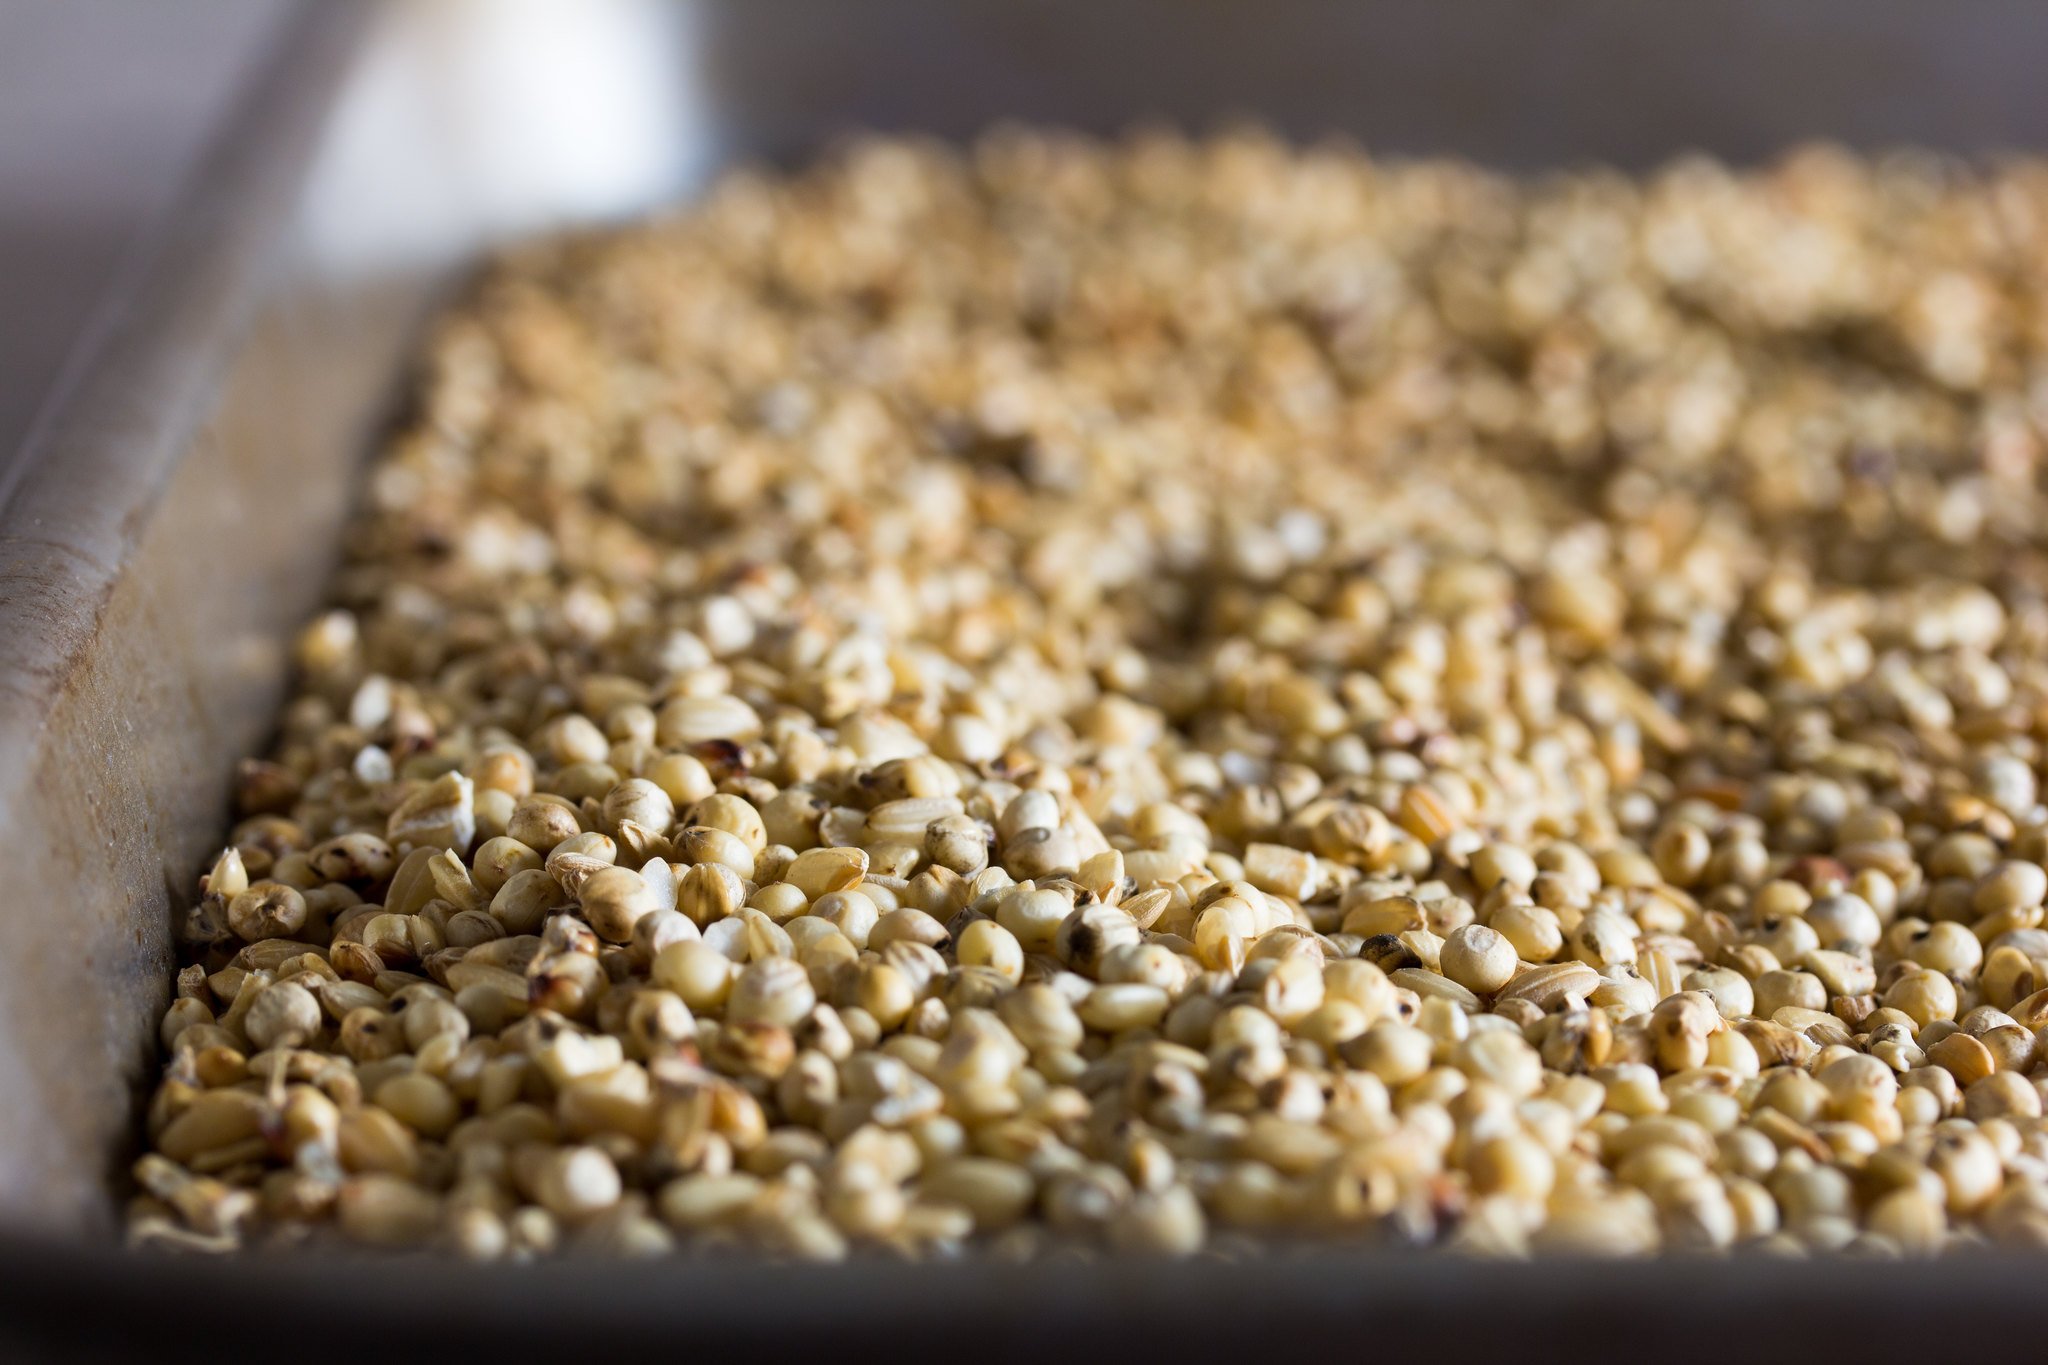 Gluten-free beer grains - Sorghum, Brown Rice, Oats, Toasted